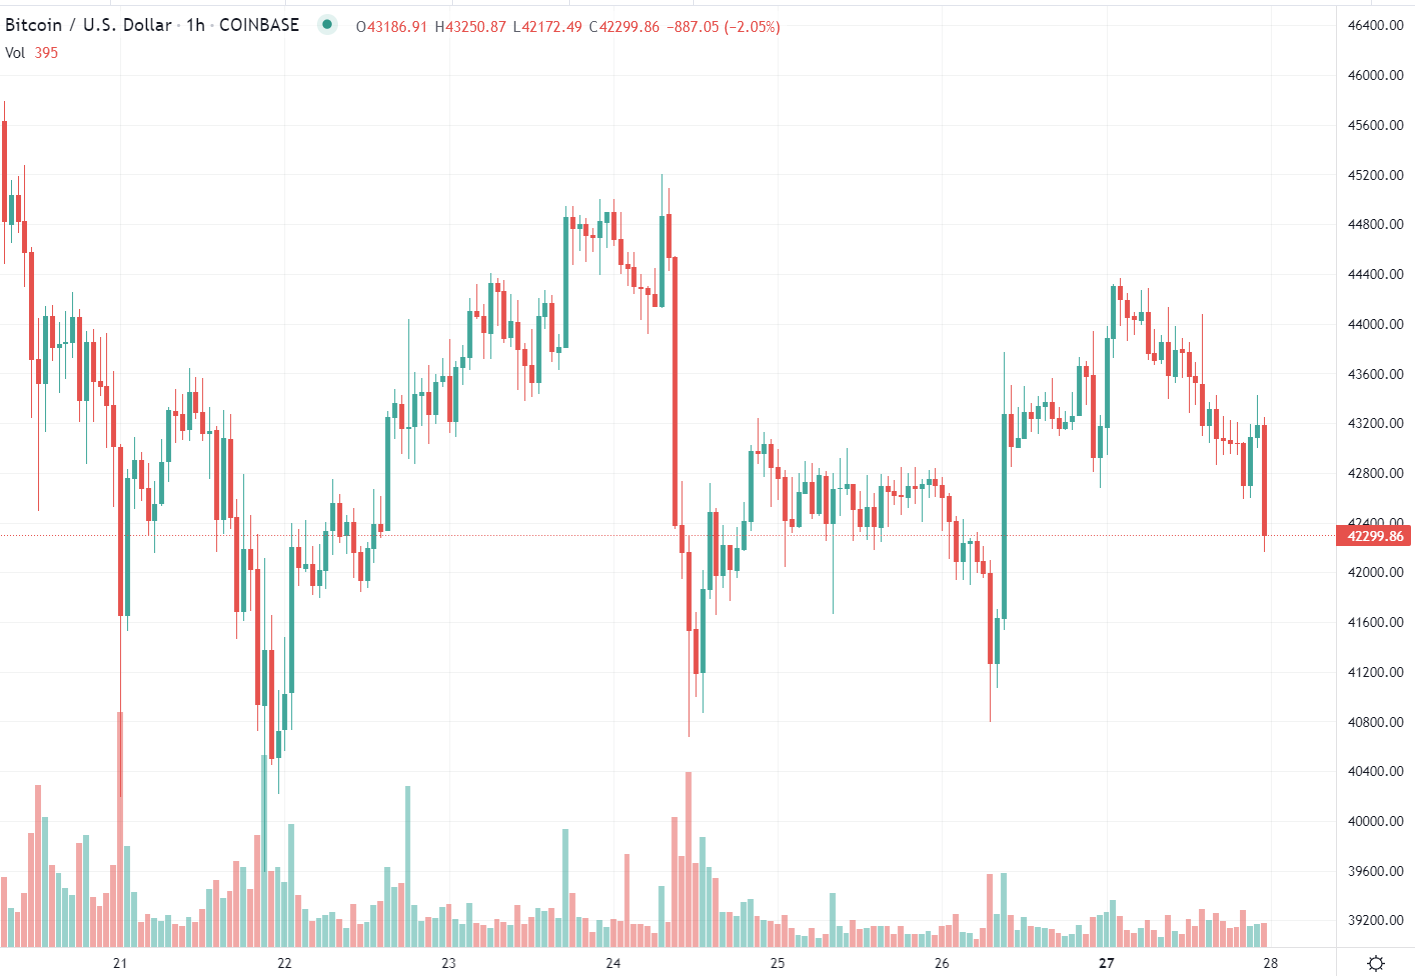 BTC/USD has lost around $1000 in the past half hour or so.